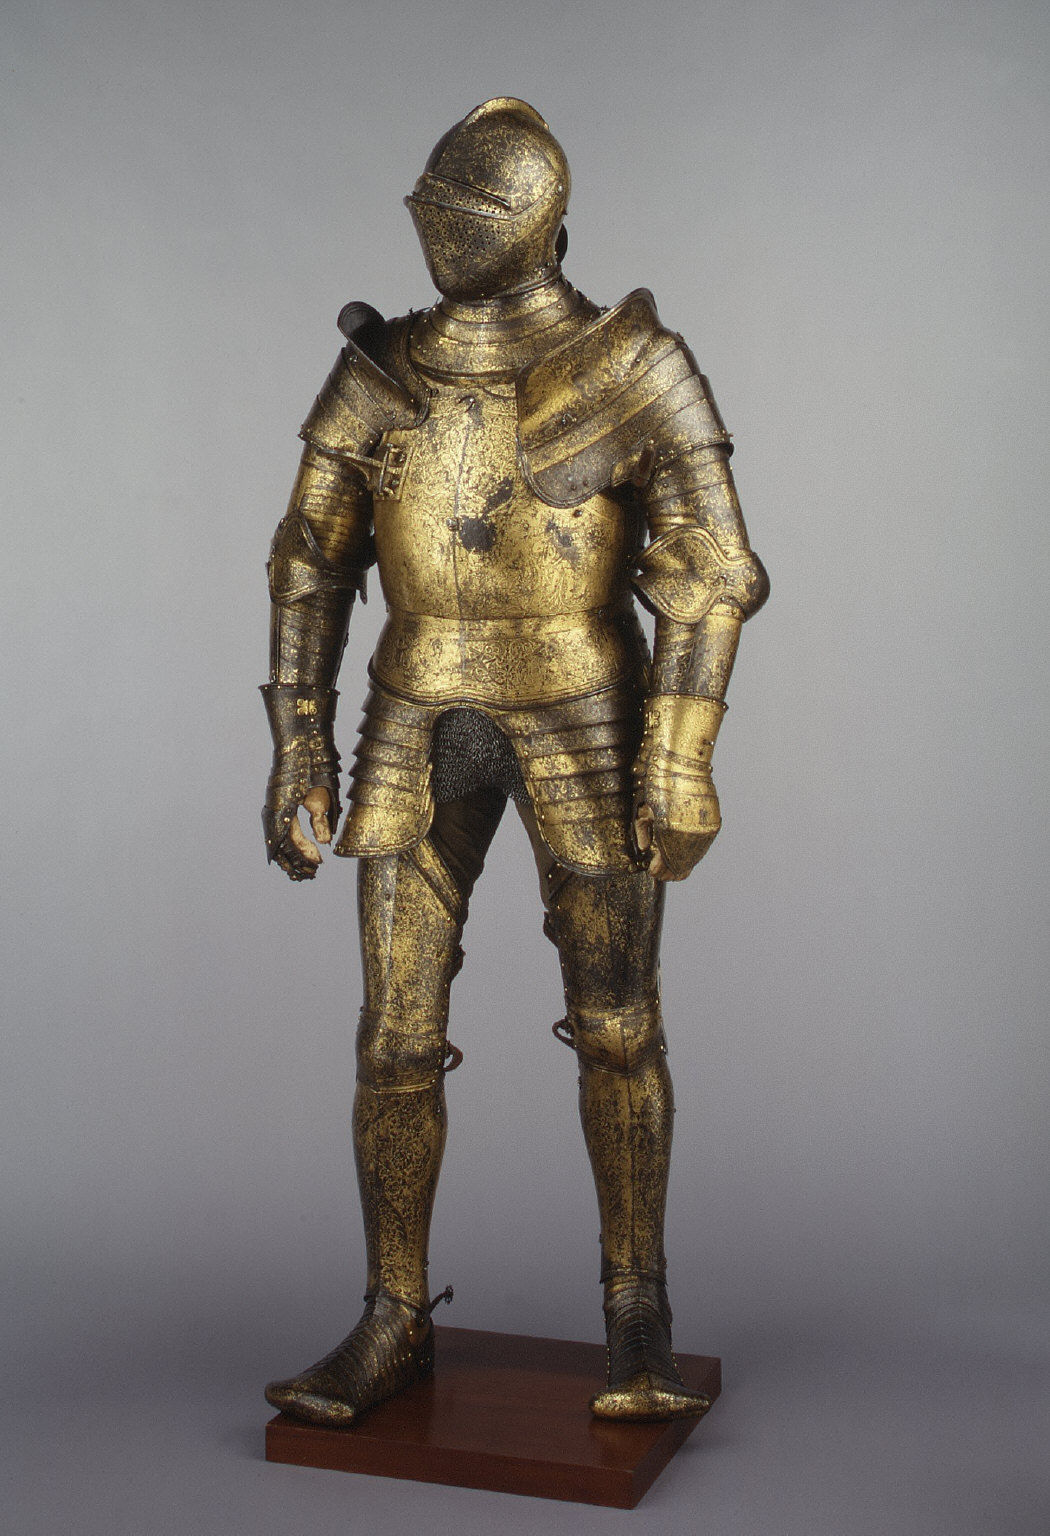 Armor for Field and Tournament